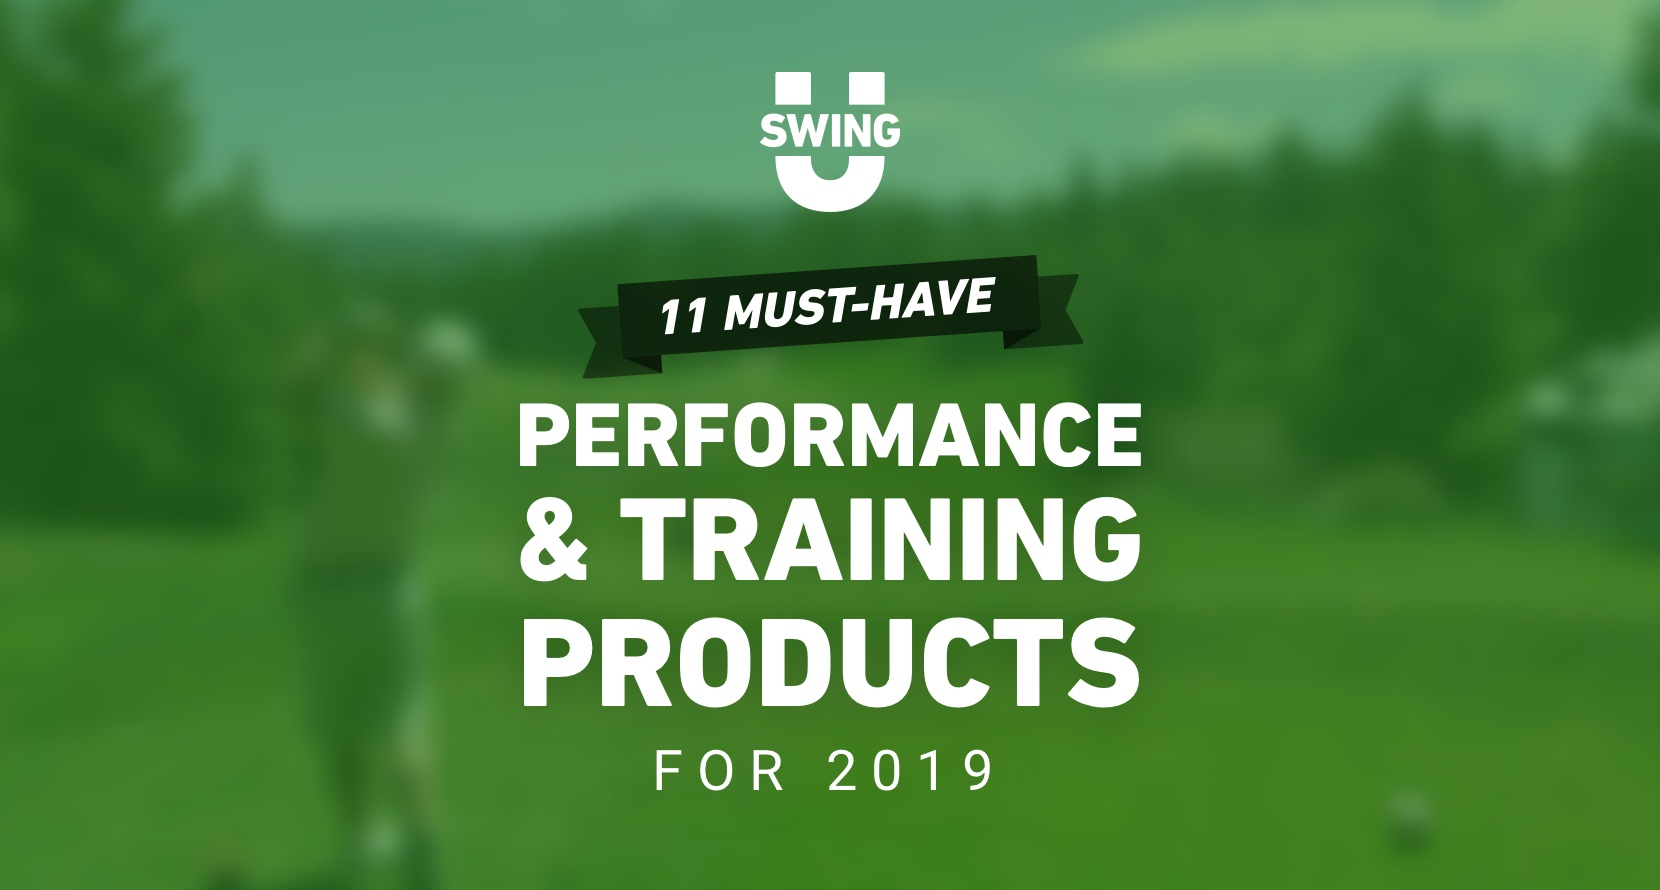 11 Must-Have Performance & Training Products